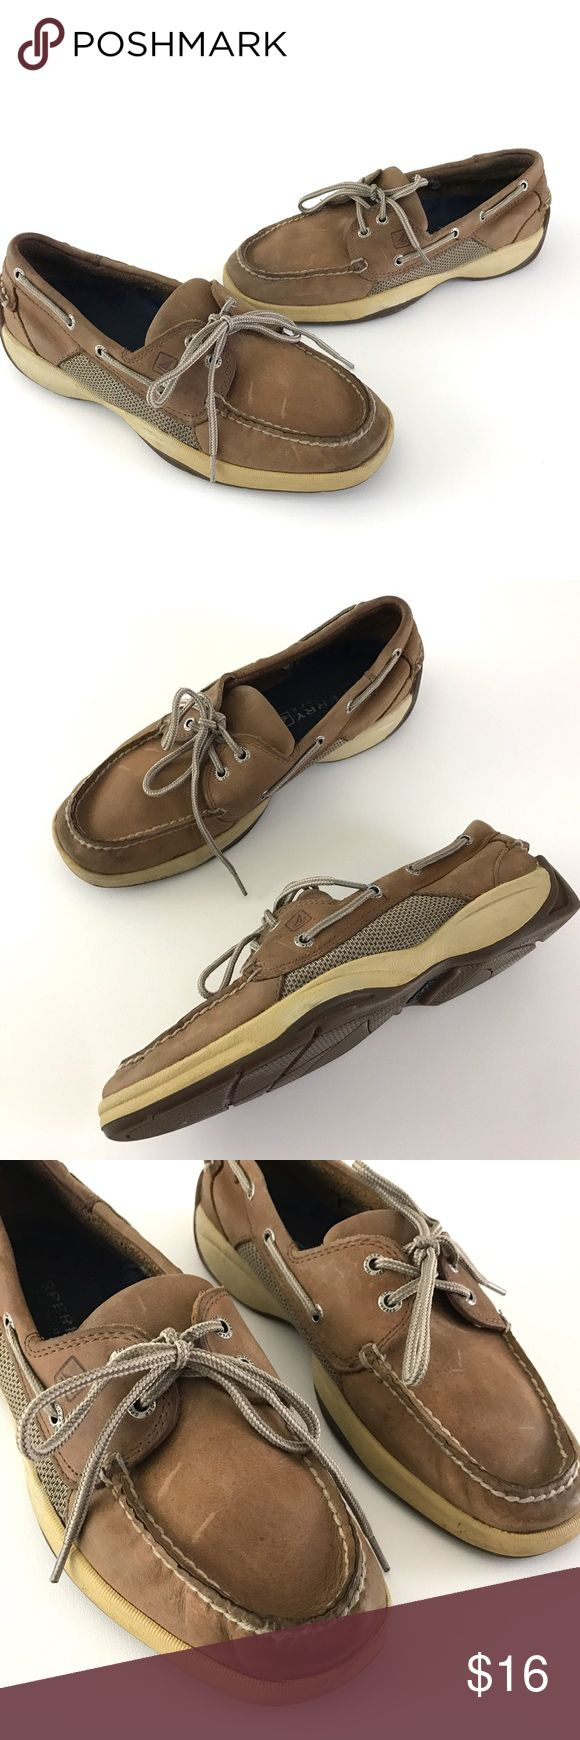 Sperry Top Sider Men's Boat Shoes Sperry Top Sider   Men's Brown Leather Lace Up Boat Shoes Size 8.5   Pre owned Shoes, has Signs of Being worn  Has Yellowing along Trim. Scuffs/ Stains  Any & All Flaws are Shown in Photos  Original Box is Not Included    Item comes from a pet free/smoke free clean environment  please contact me for any additional questions  I offer combined shipping Sperry Top-Sider Shoes Loafers & Slip-Ons